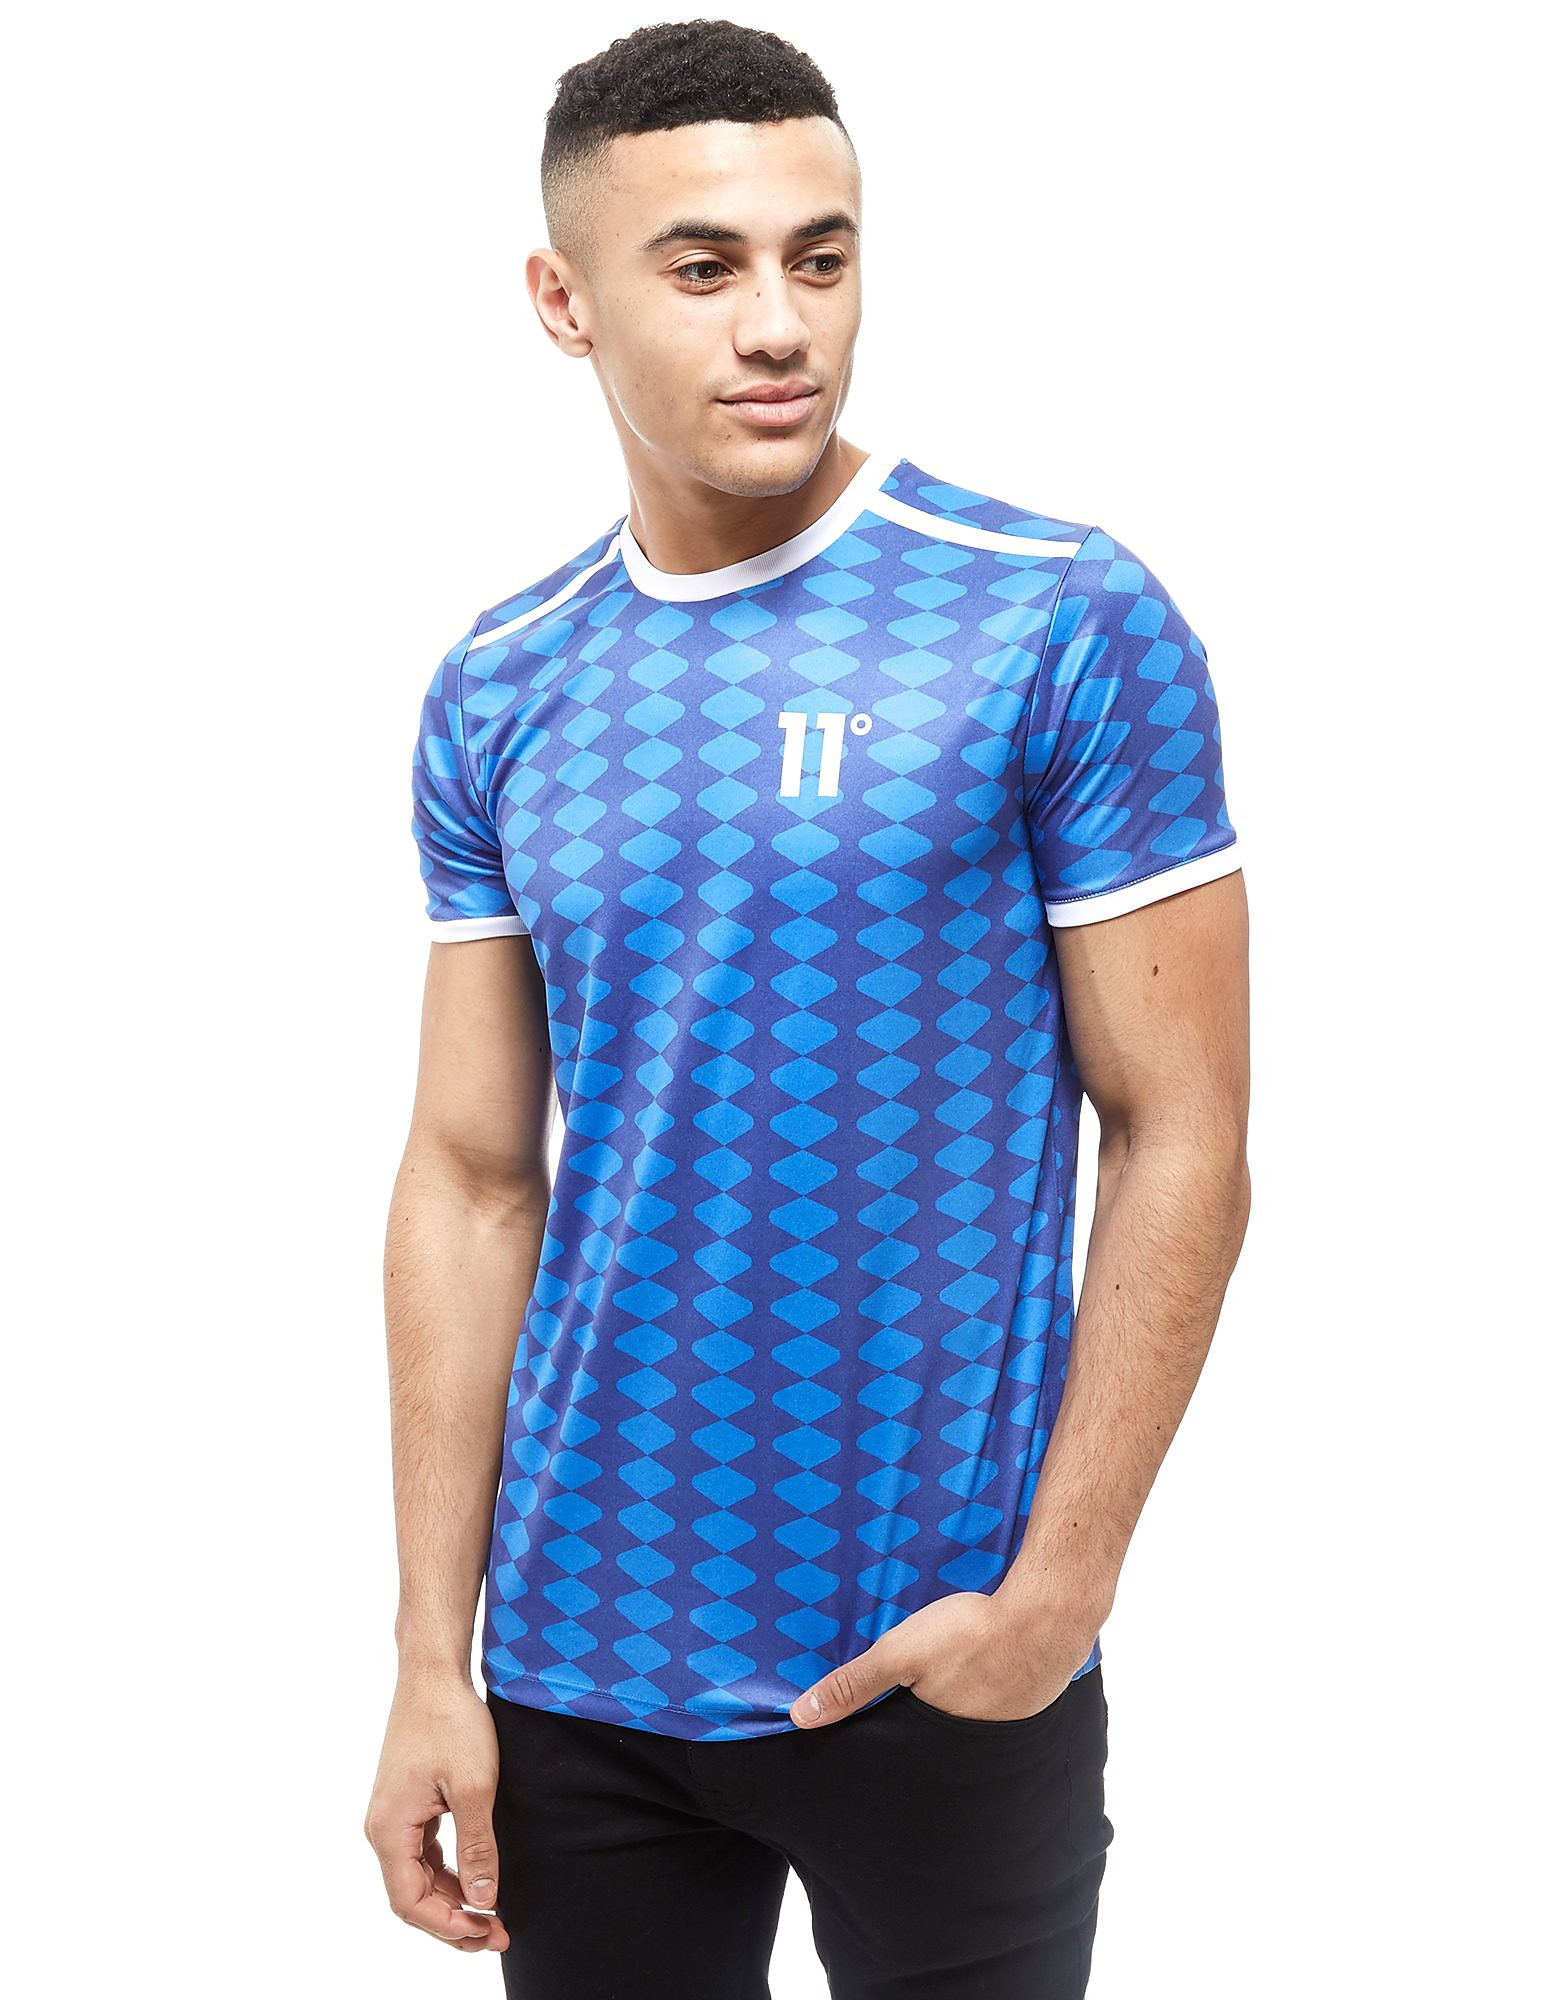 11 Degrees Diamond Football T-Shirt